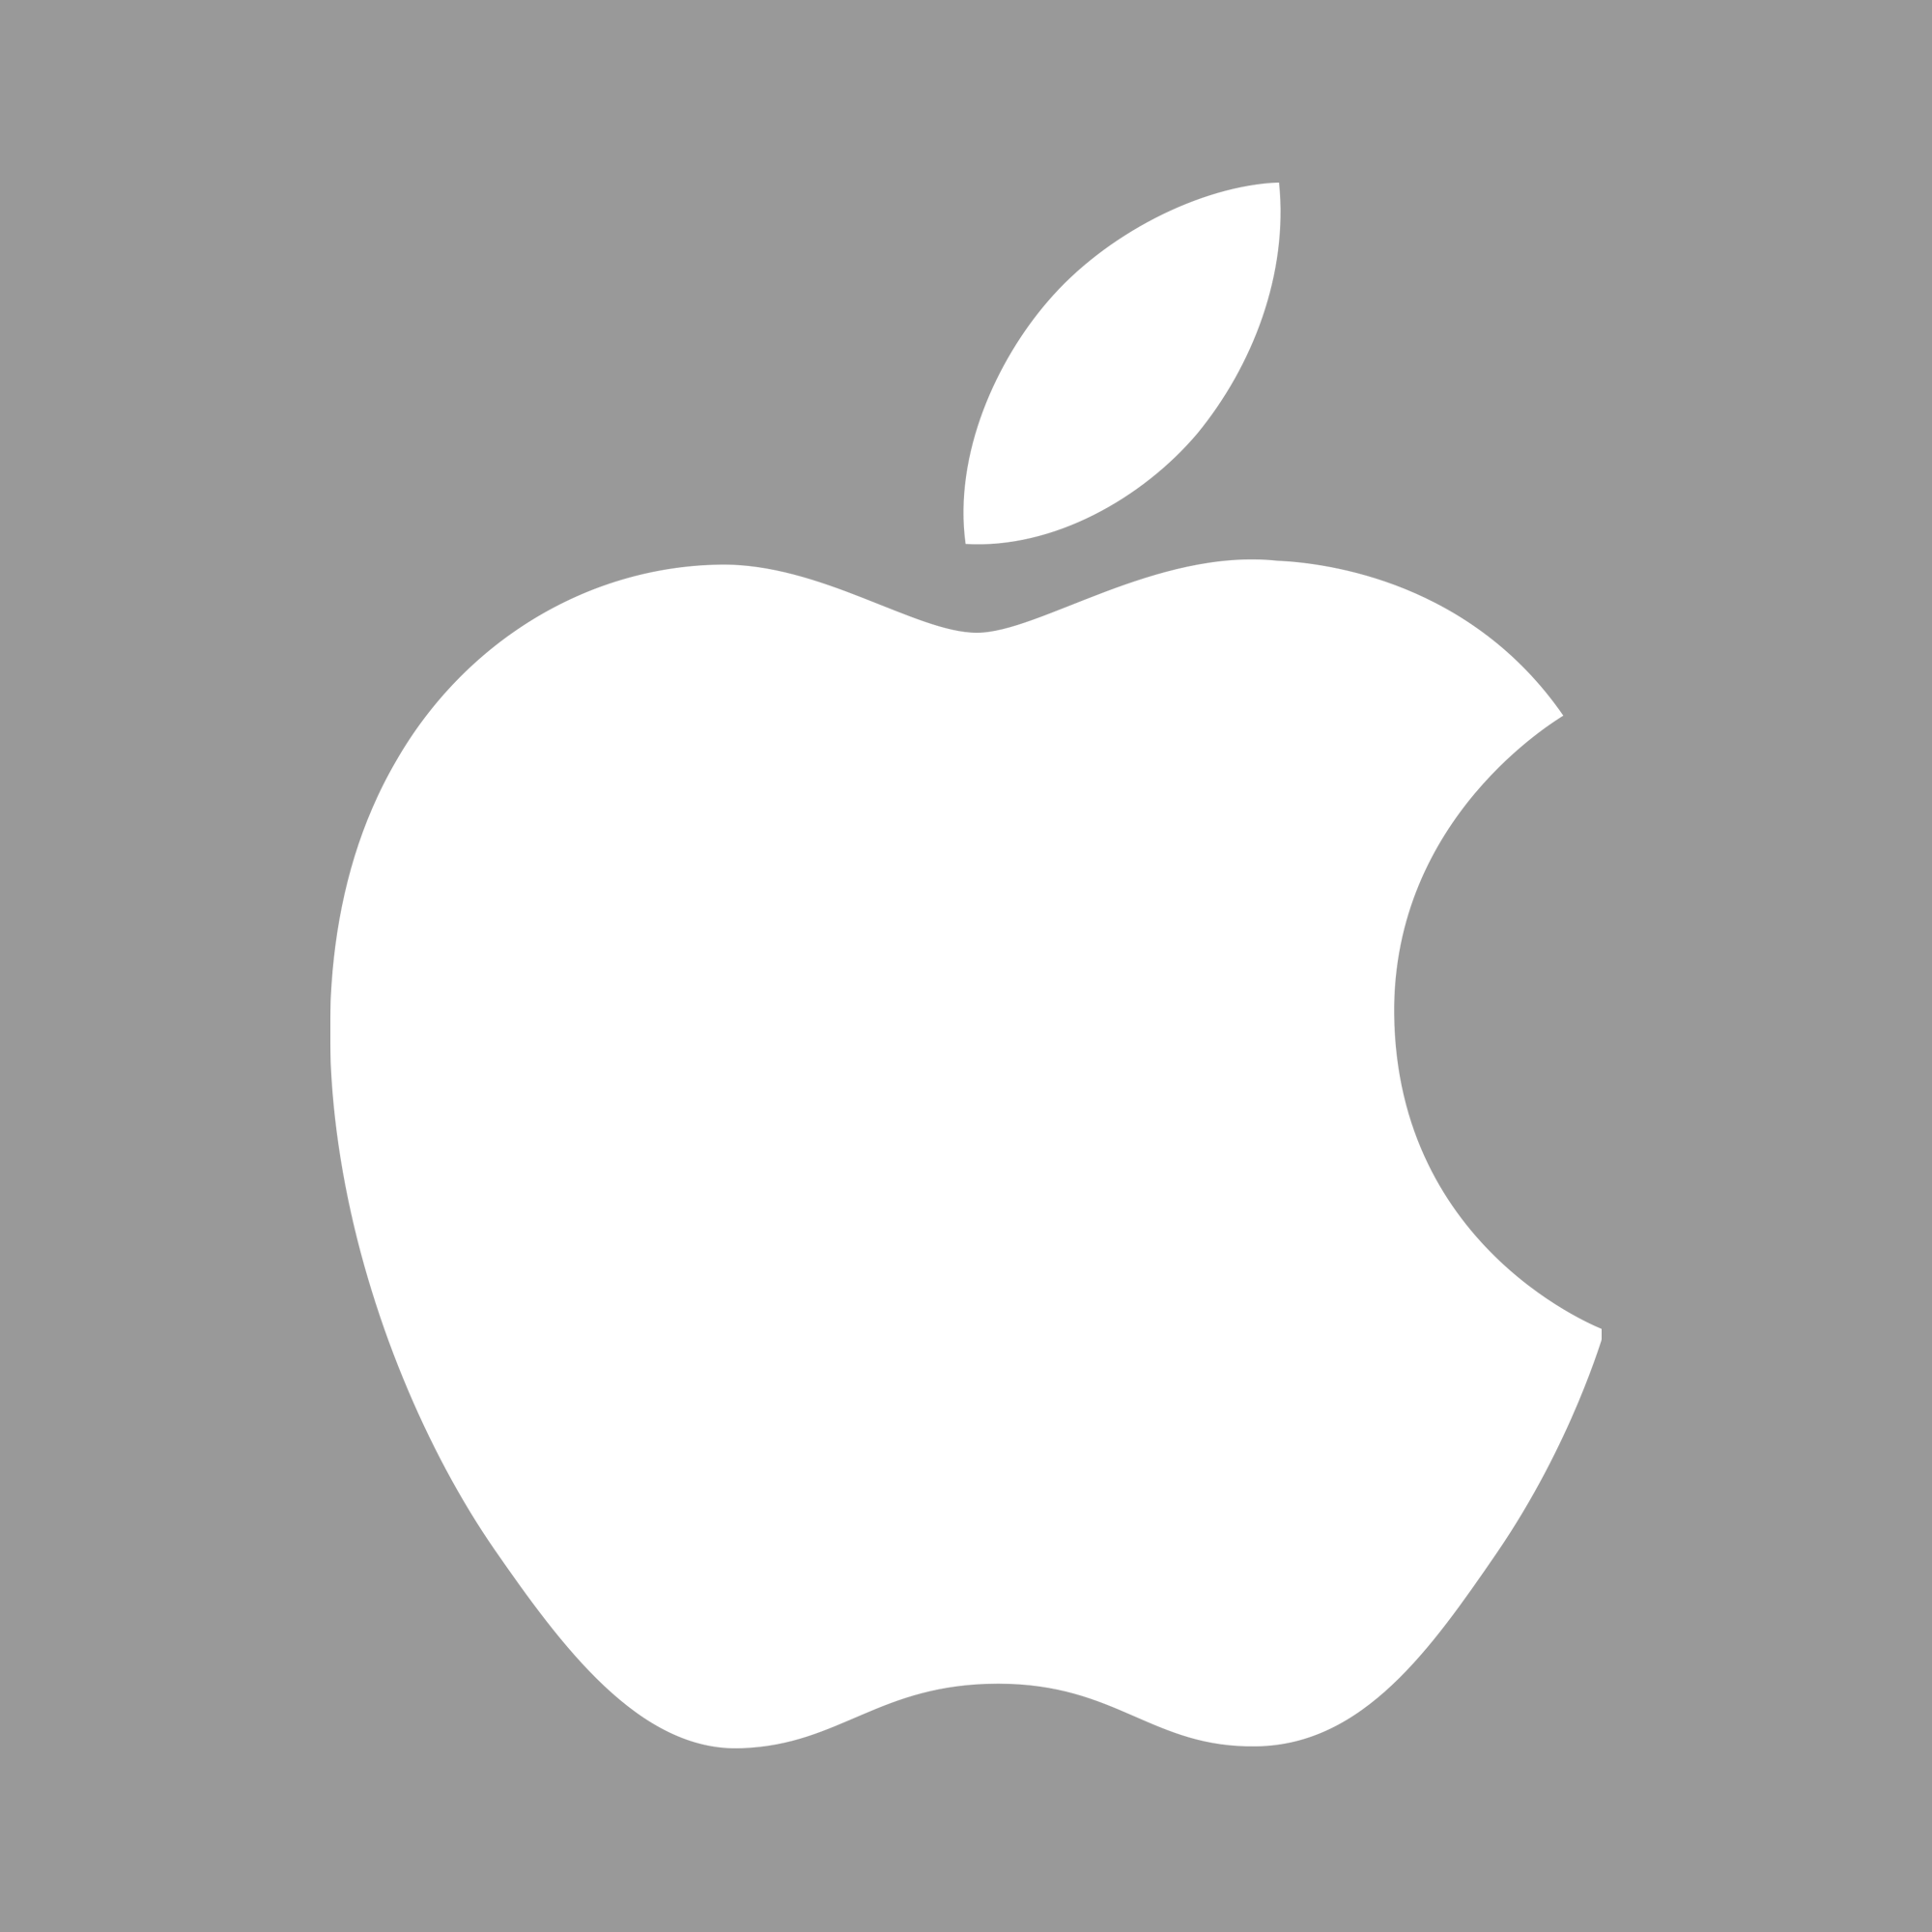 Apple earnings release 29 Jan